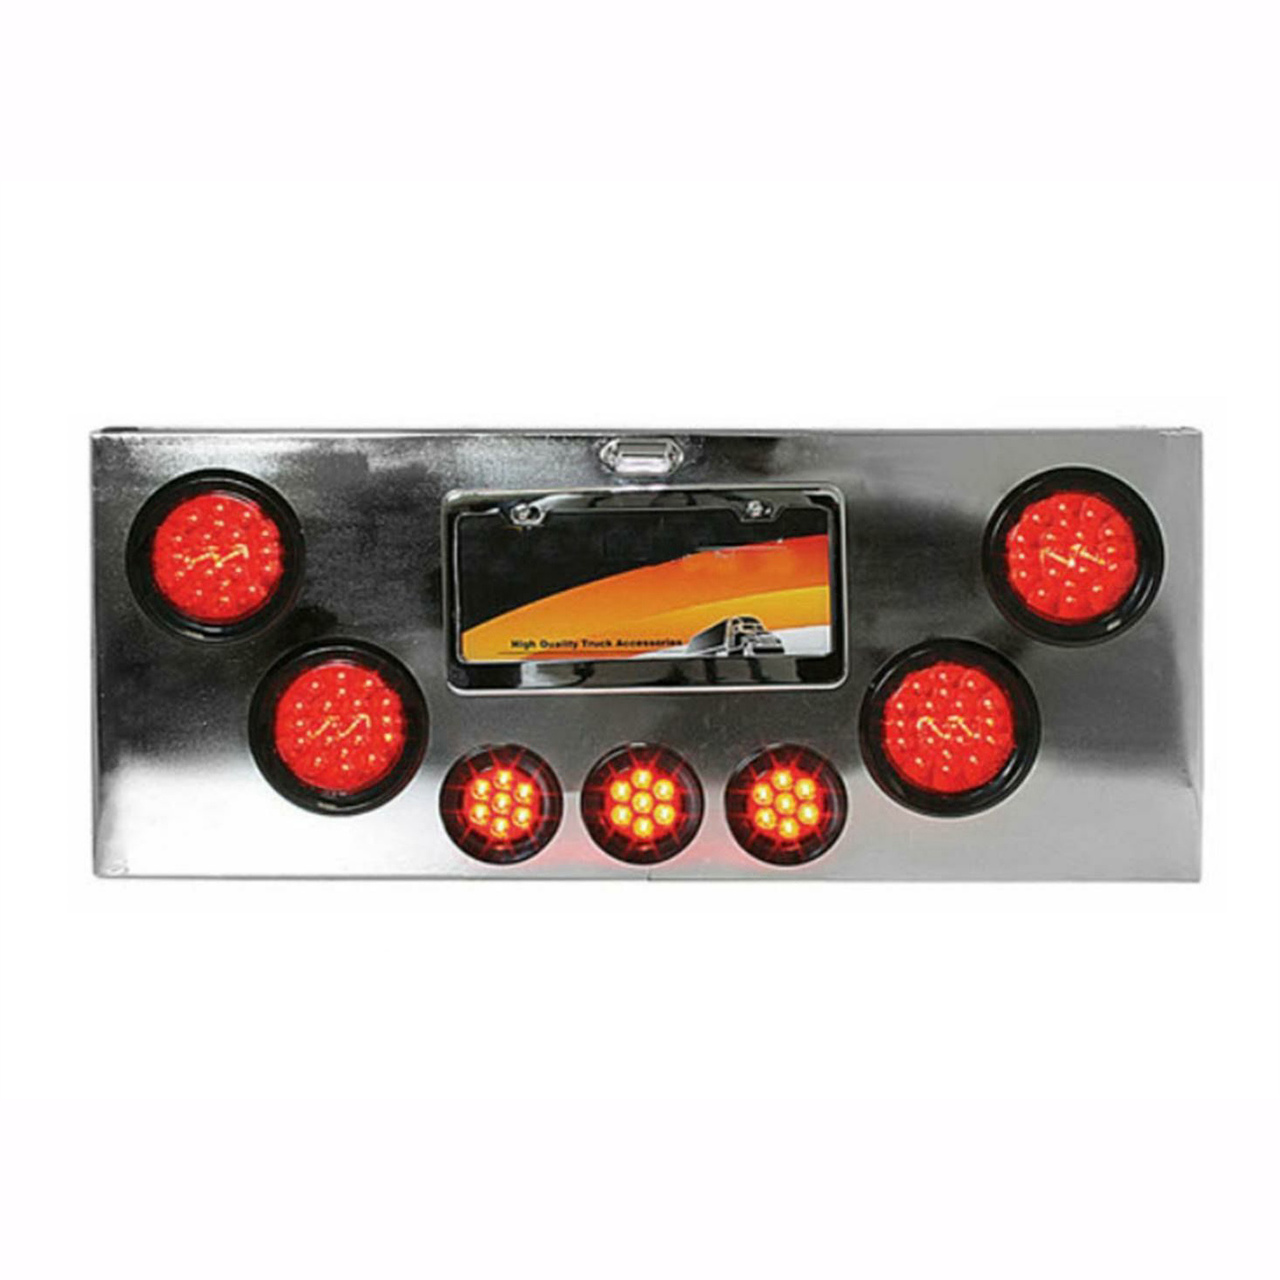 Rear Center Panel with Red LED Lights (Red Lens) Chrome Plated